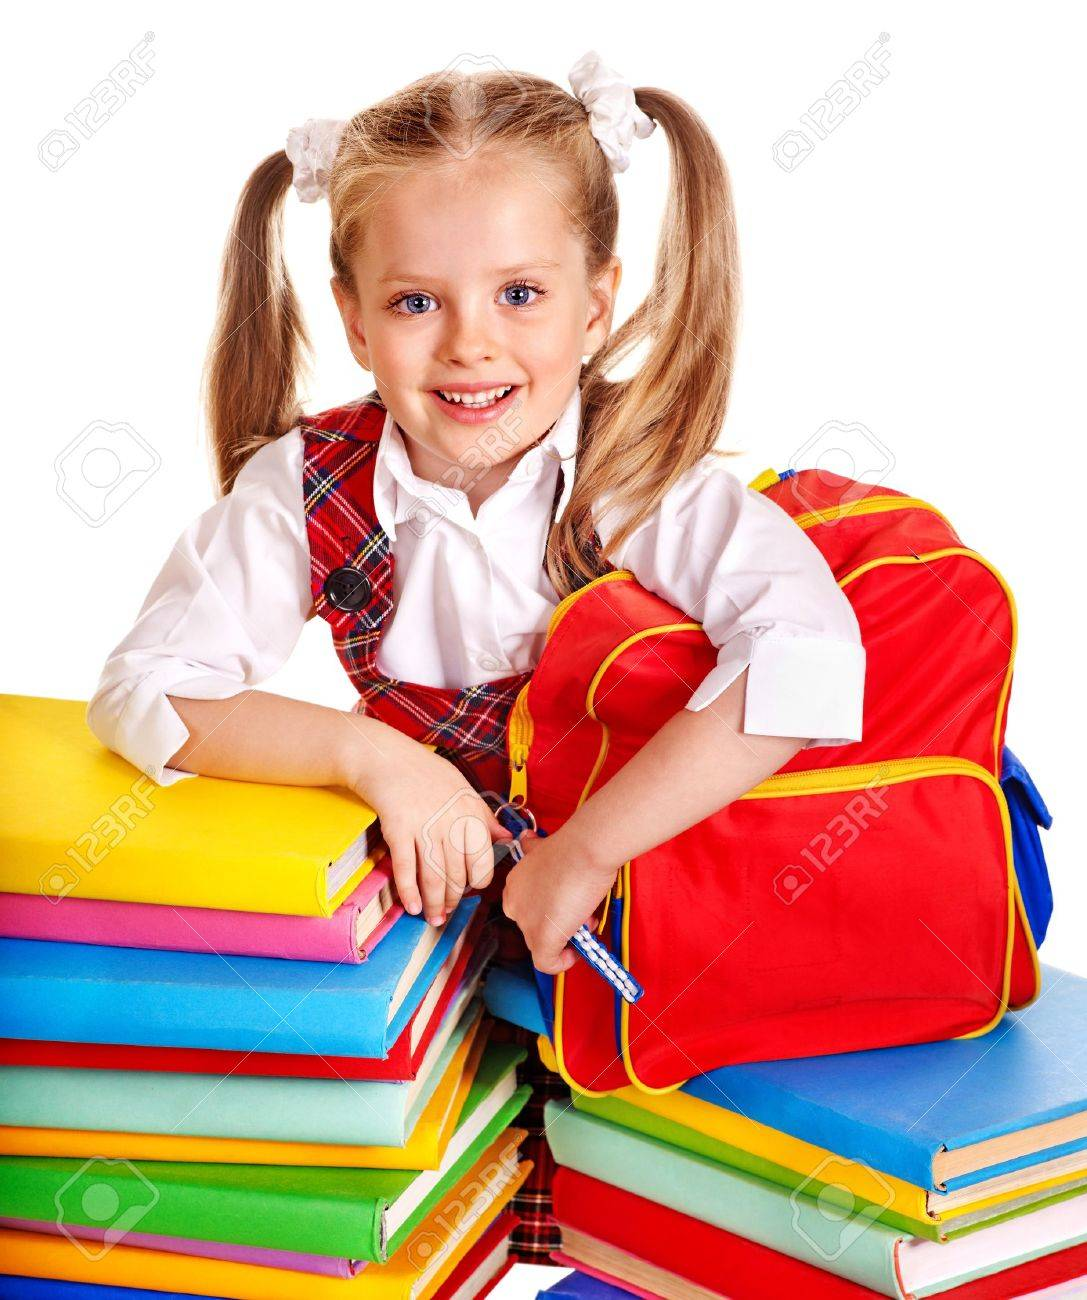 Cute child with backpack holding book. Isolated. Stock Photo - 15290424 6323d6b4902c2